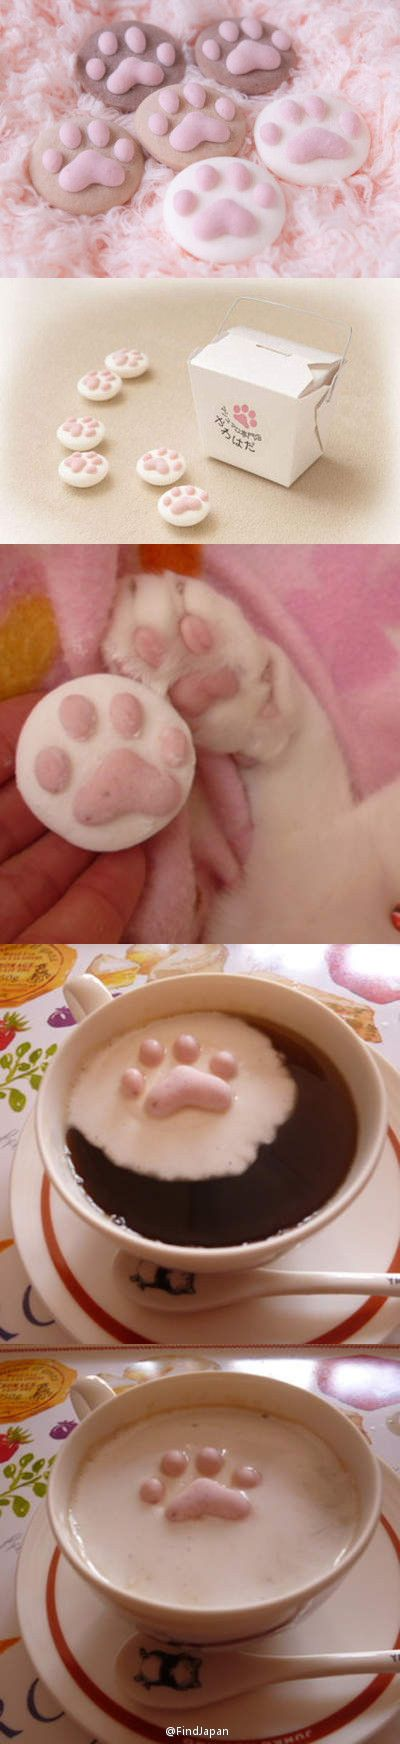 Japanese product...marshmallow around sugar paw print...marshmallow melts in hot beverage and sugar floats...very cute